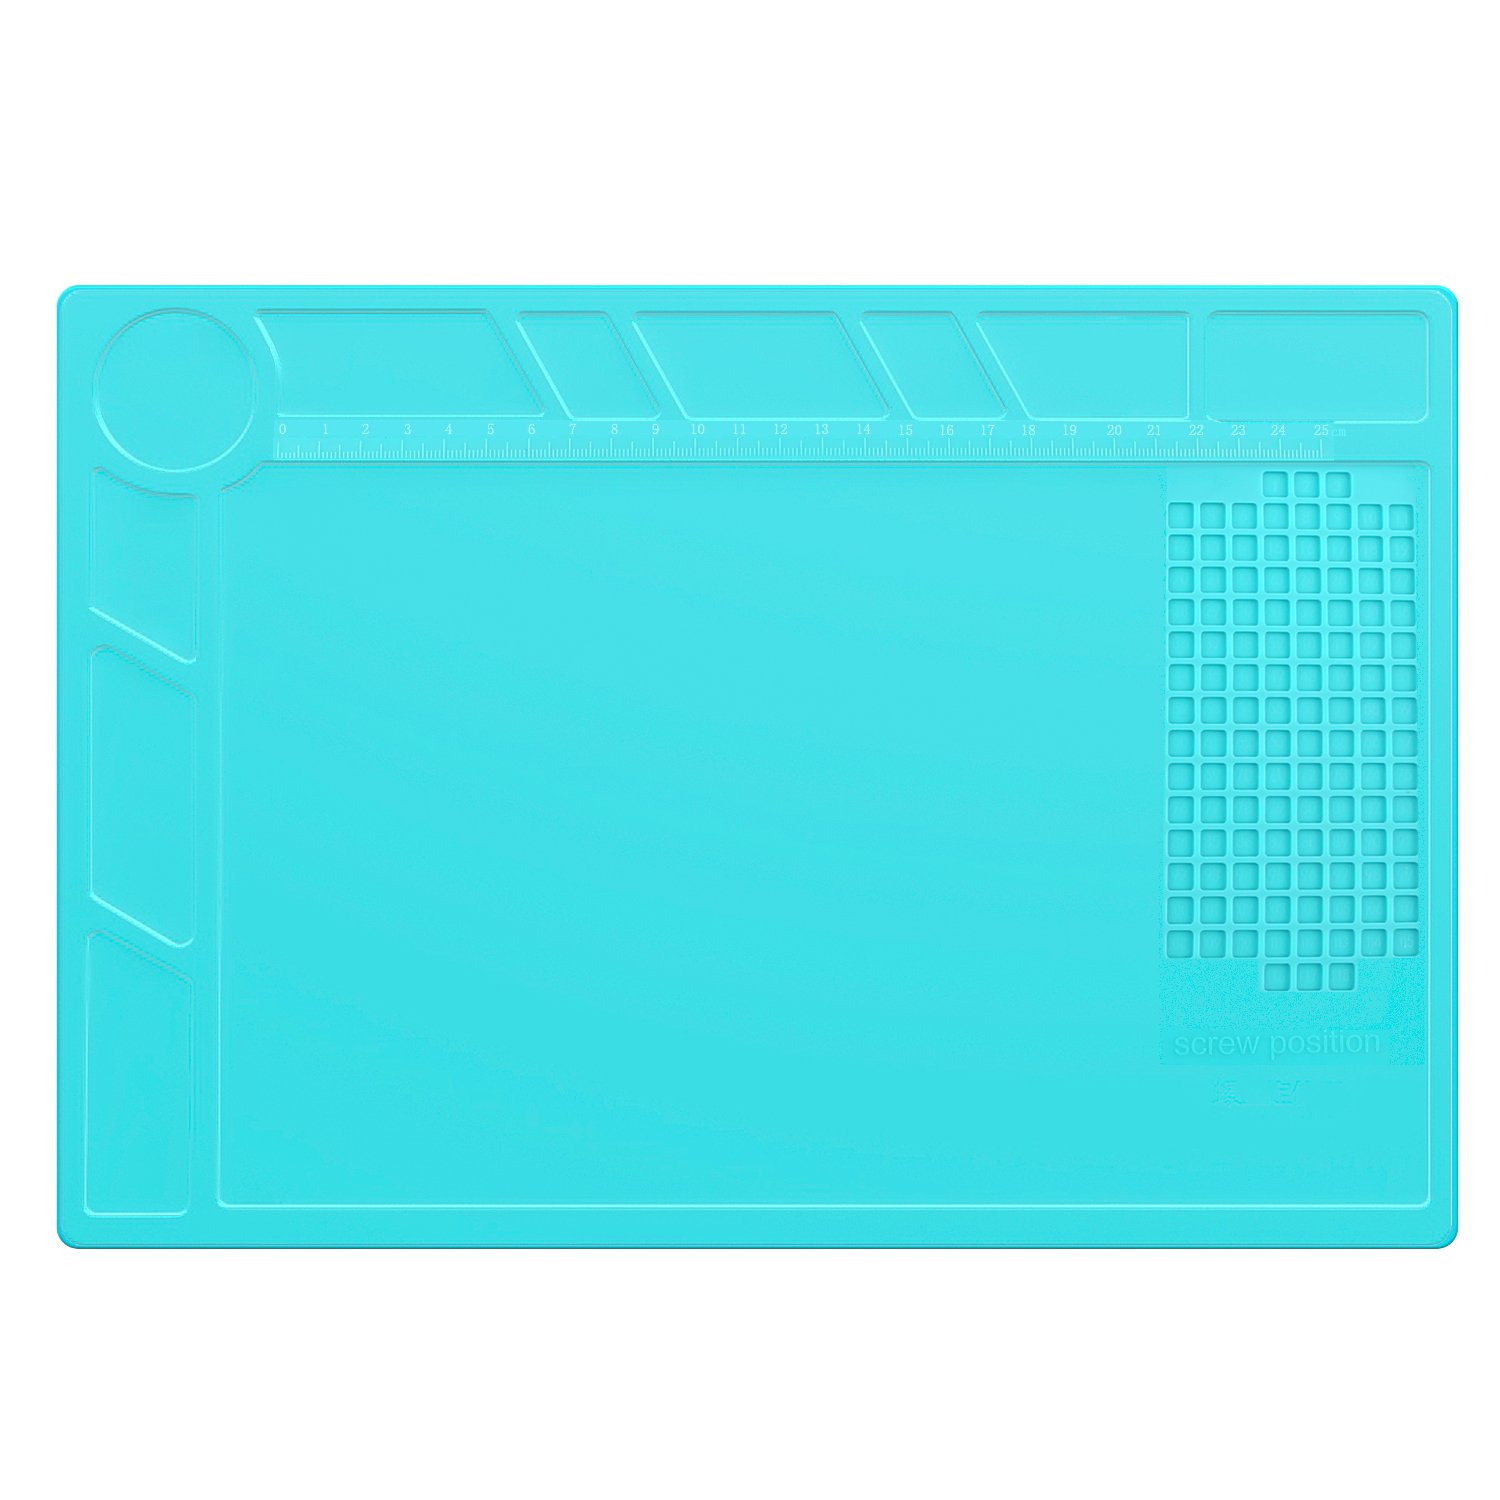 Housolution Silicone Repair Mat, 13.3 x 9 Inch Heat Resistance Silicone Desk Mat for Electric Soldering Iron Maintenance Work Pad with Scale Ruler, Blue